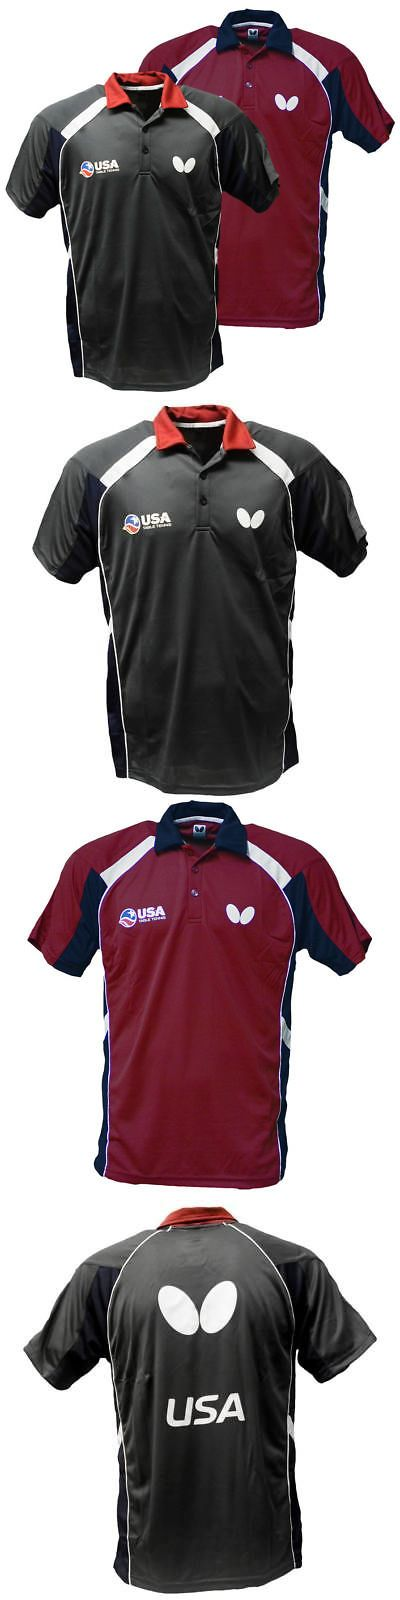 Shirts and Tops 70900: Butterfly Men S Usa Table Tennis Team Red Grey Polyester Shirt -> BUY IT NOW ONLY: $47.99 on eBay!